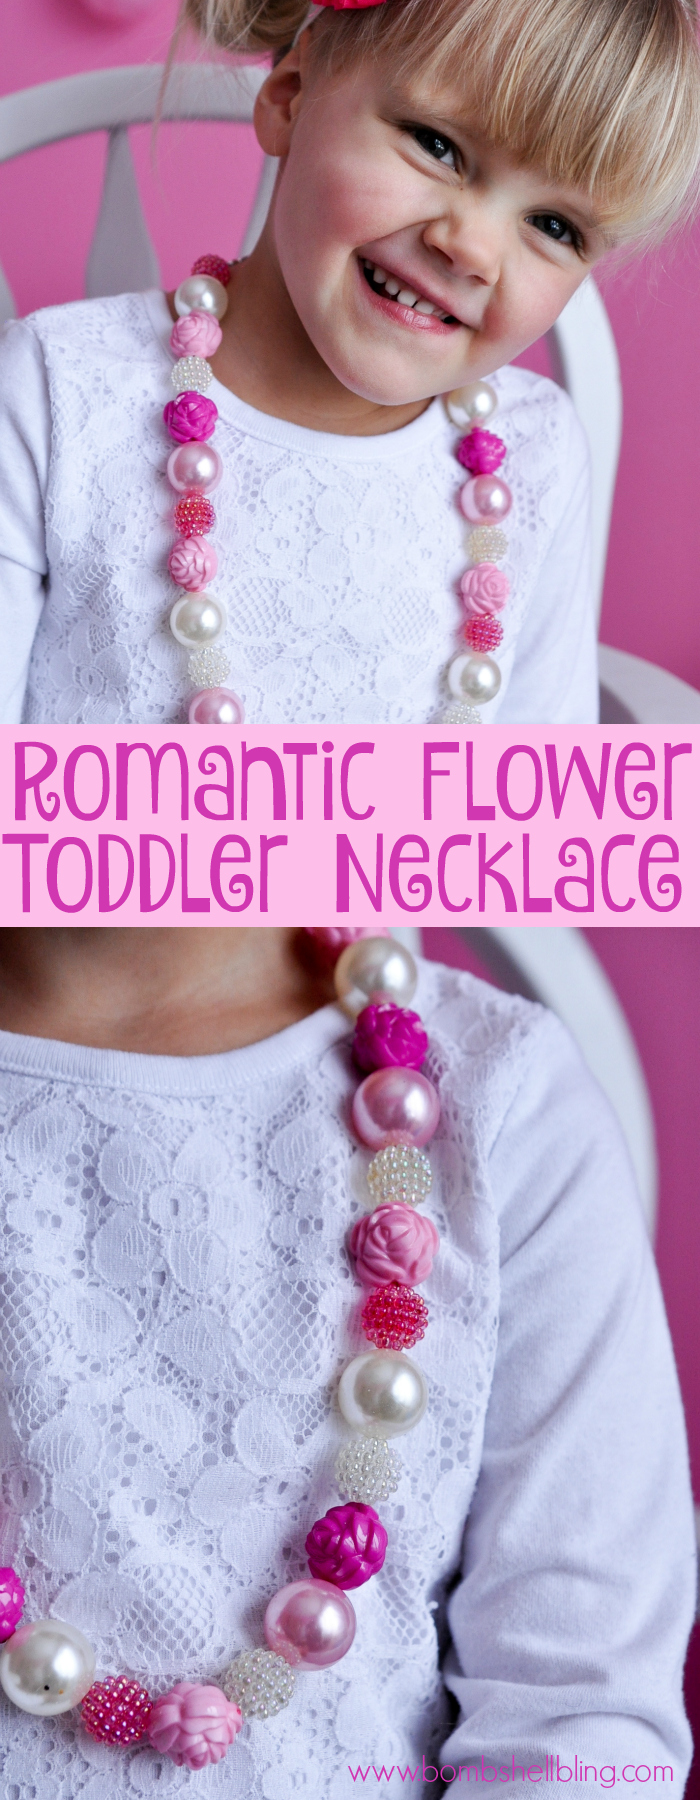 Romantic Flower Toddler Necklace DIY Tutorial